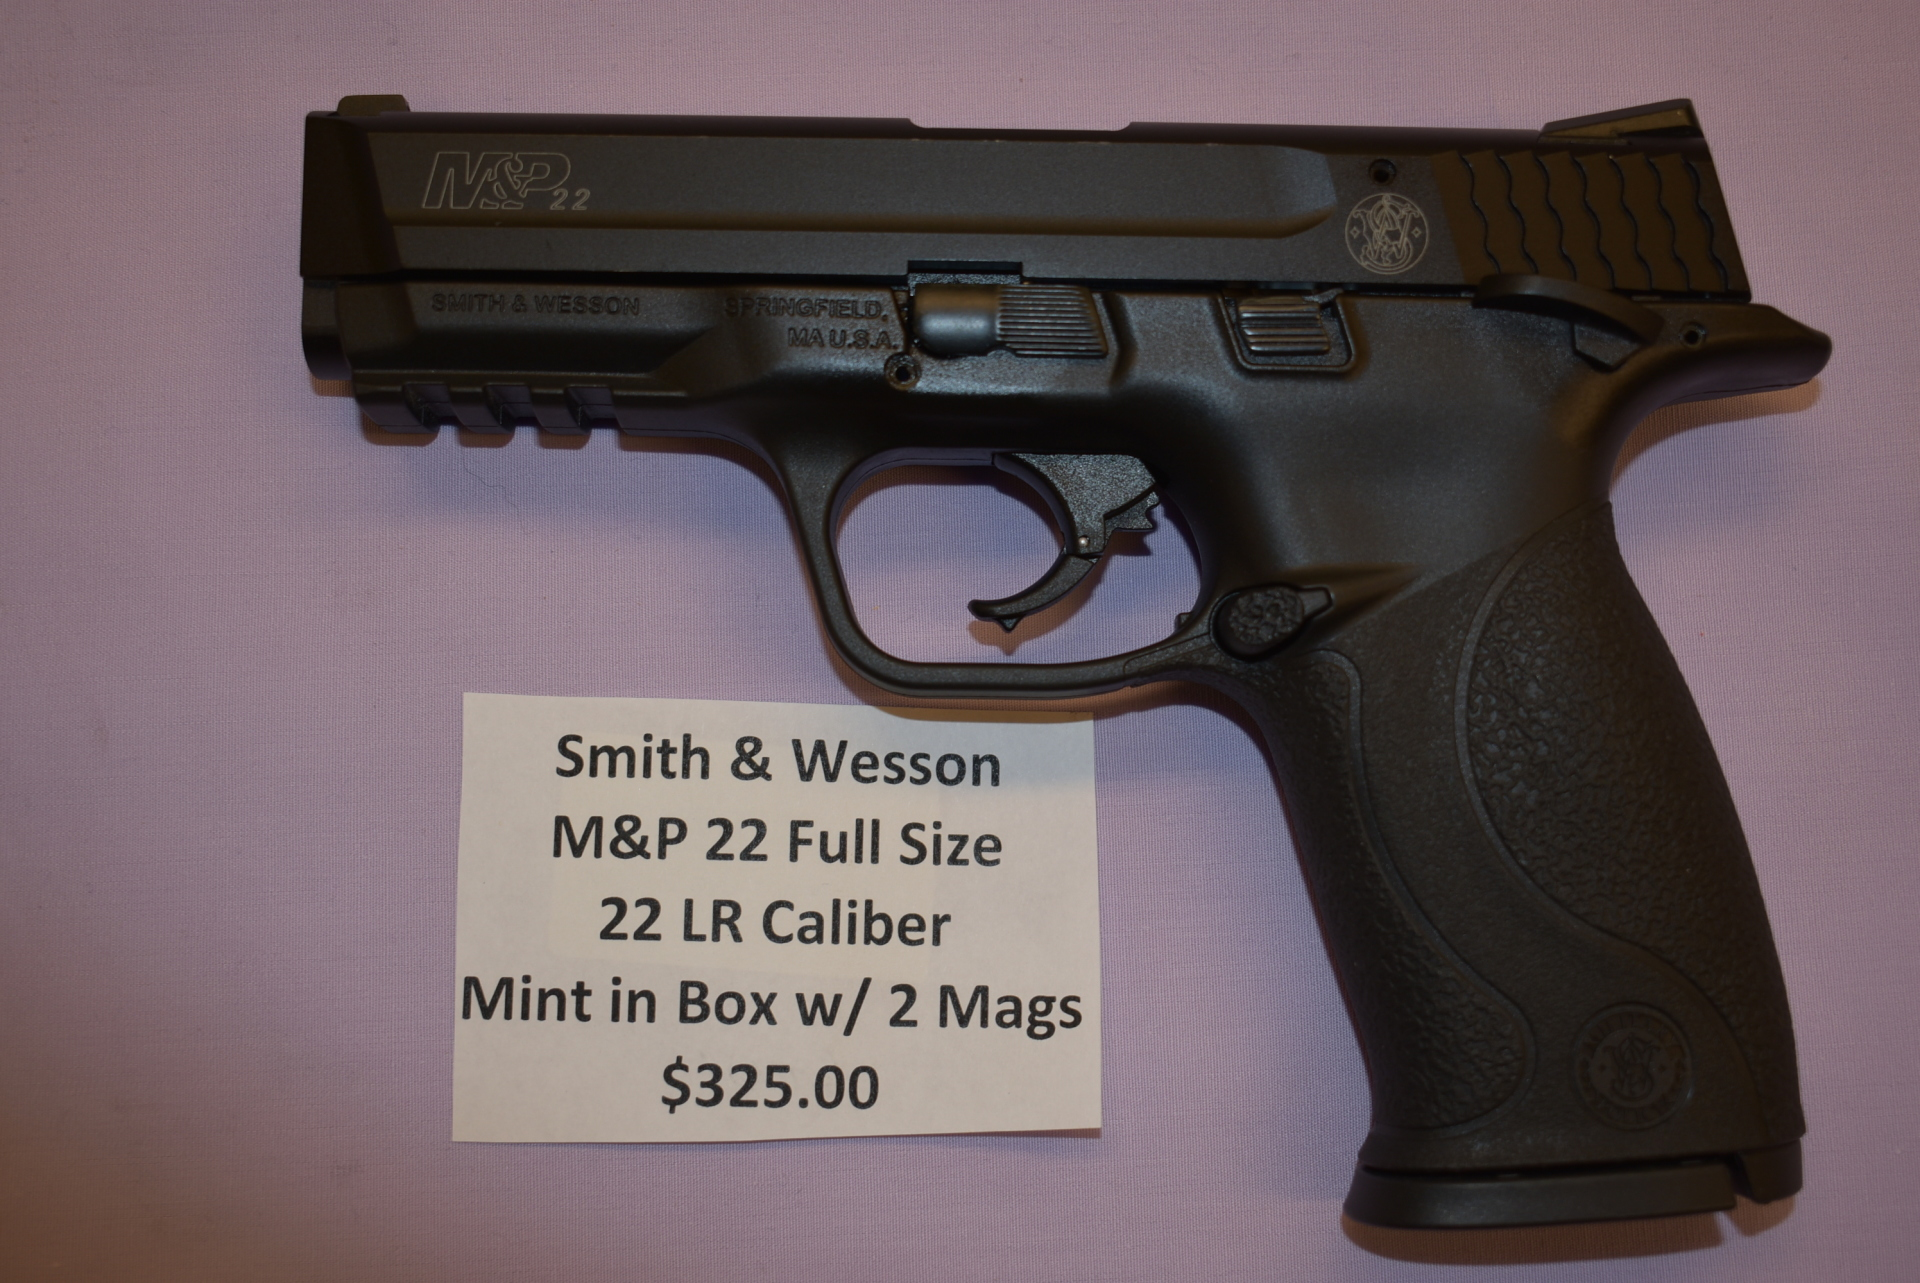 Smith & Wesson M&P 22 Full Size